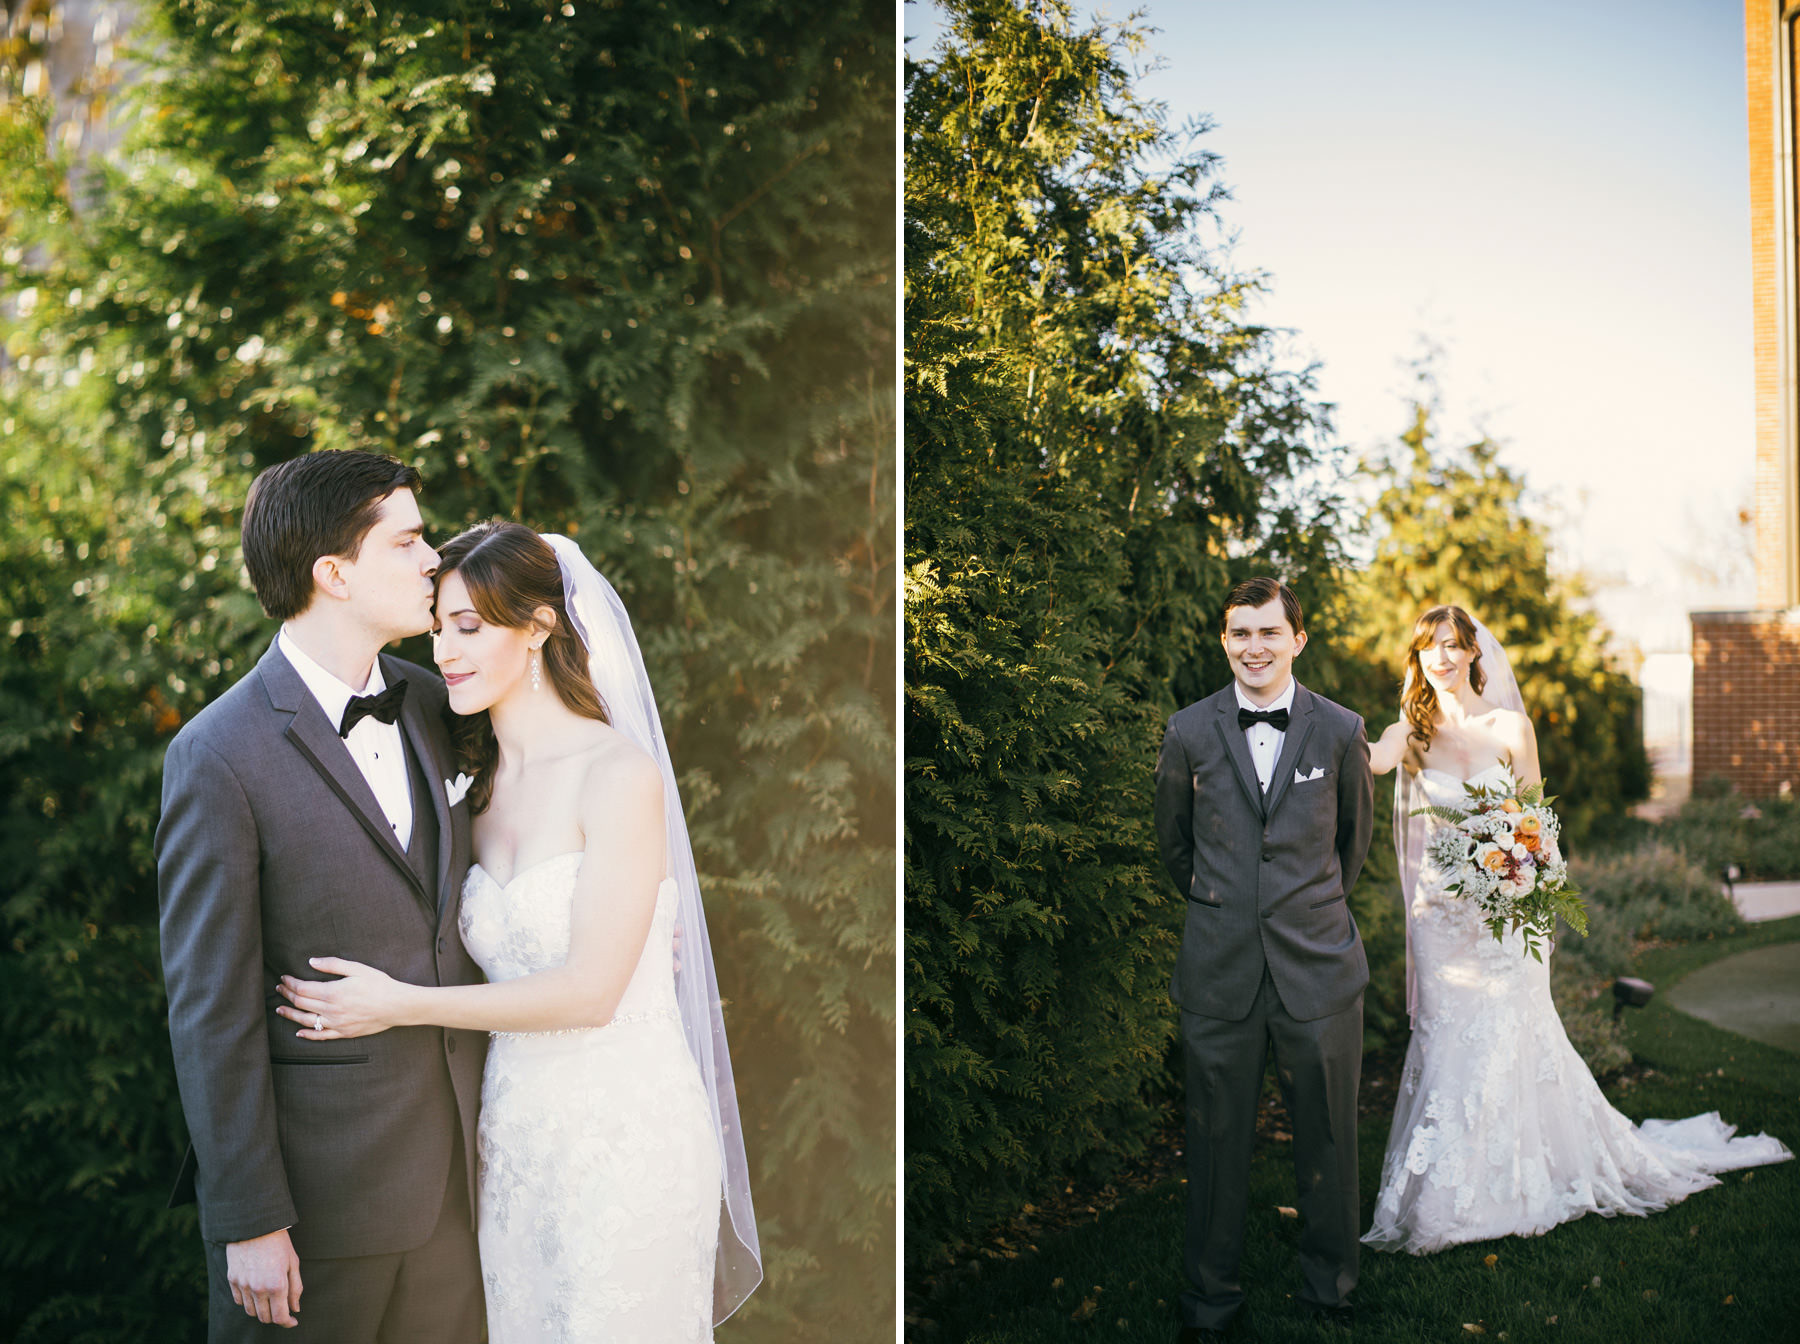 246_Cider Gallery Fall Wedding Lawrence, Kansas_Kindling Wedding Photography.JPG